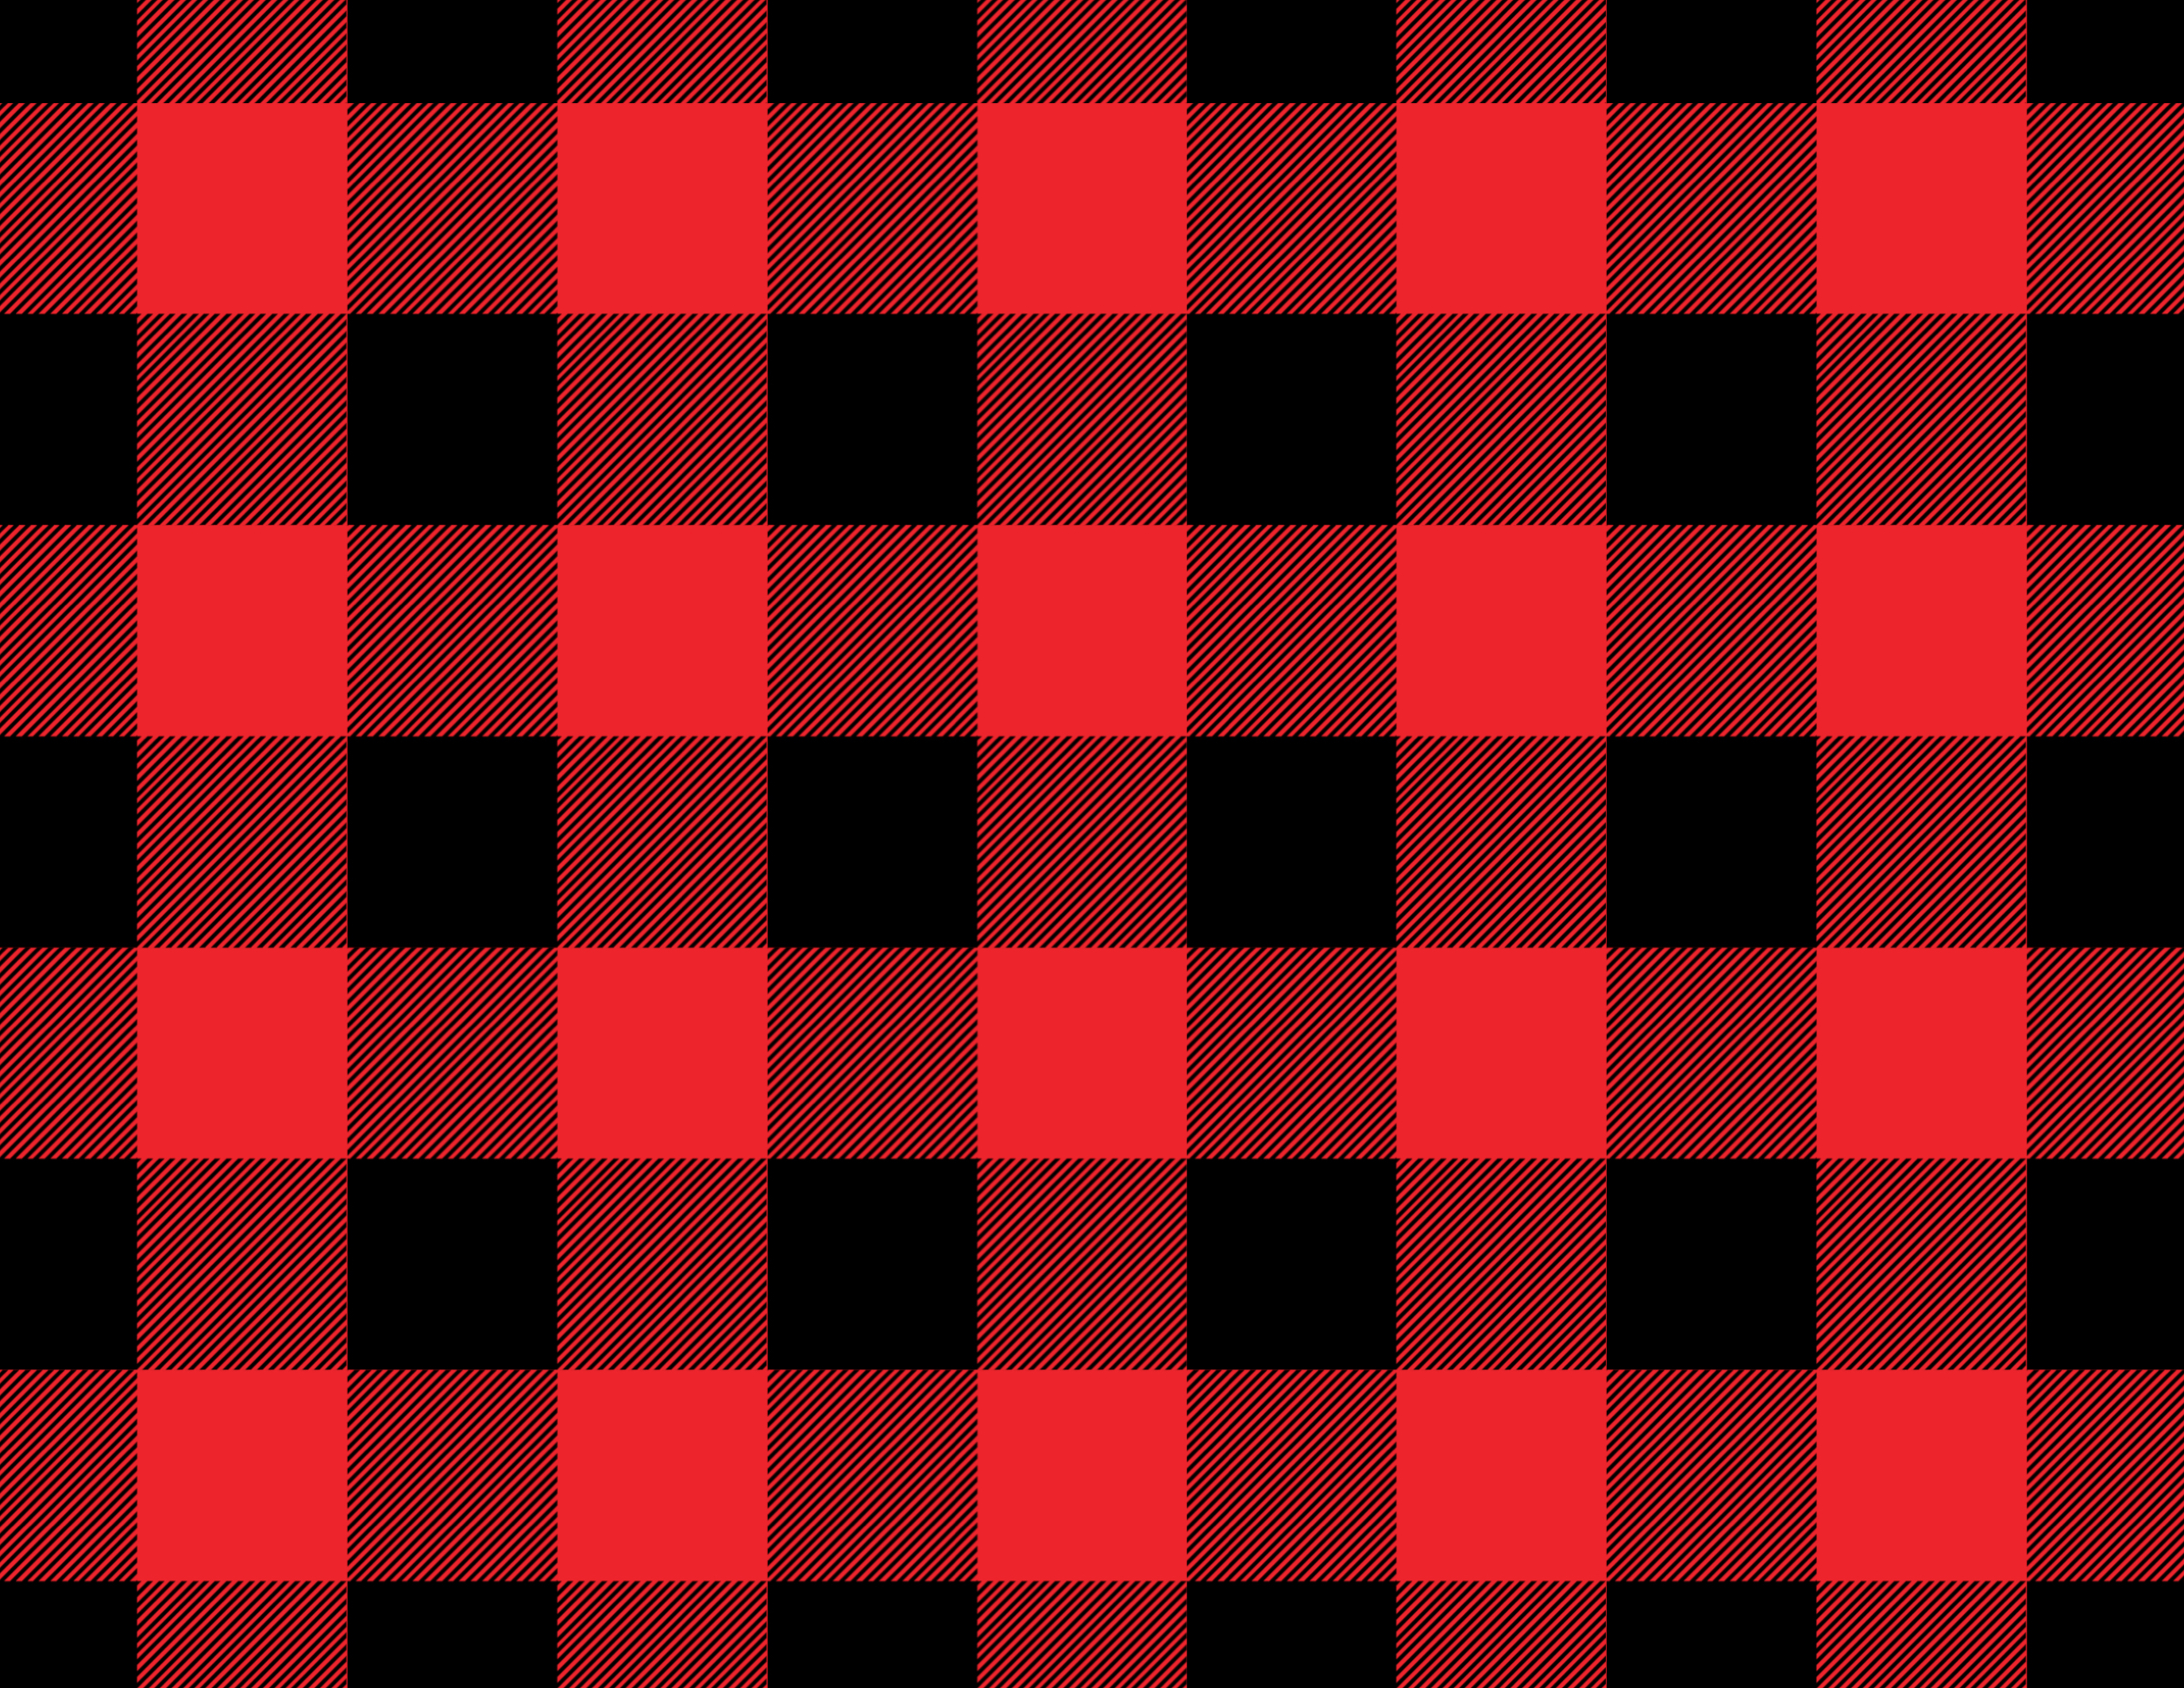 Rustic Buffalo Plaid Wrapping Paper Free Printable Paper Trail Design